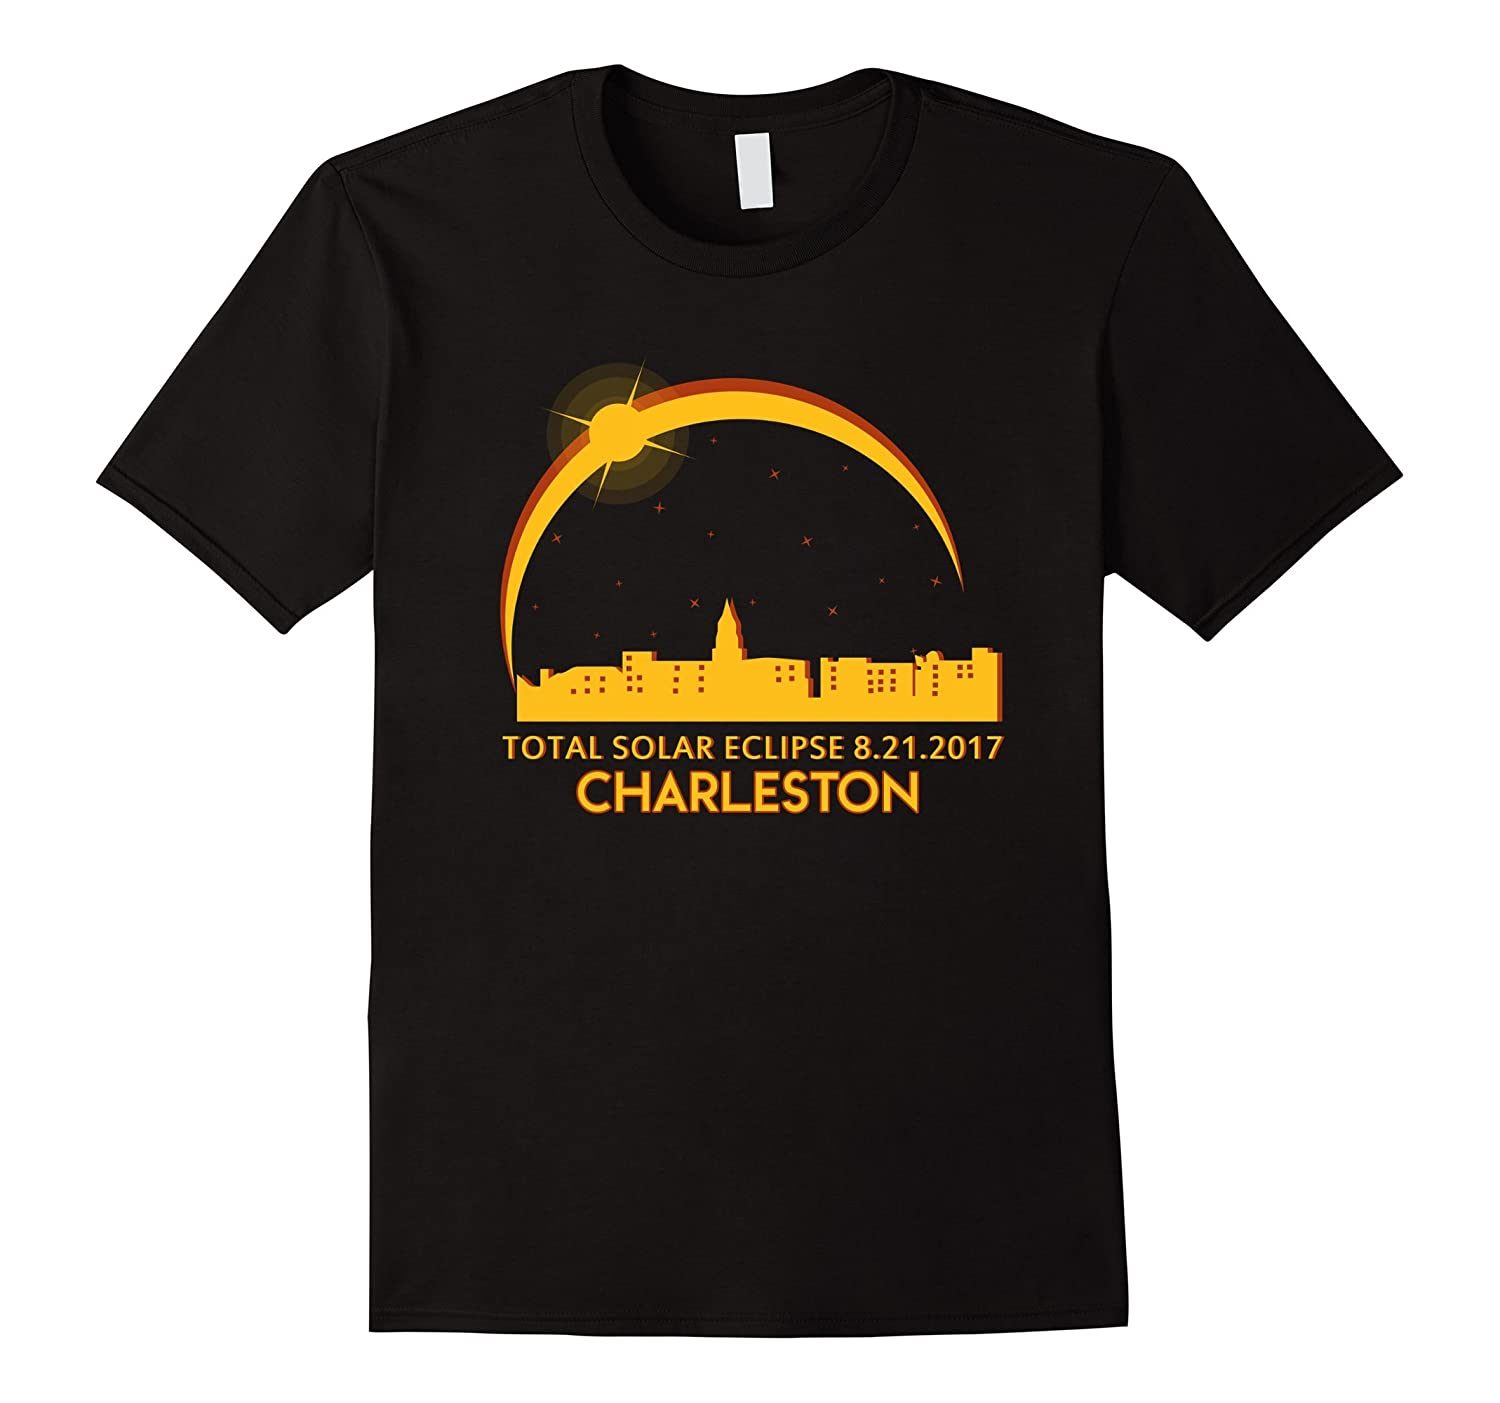 Charleston sc total solar eclipse 8 21 2017 t shirt bn for T shirt printing charleston sc